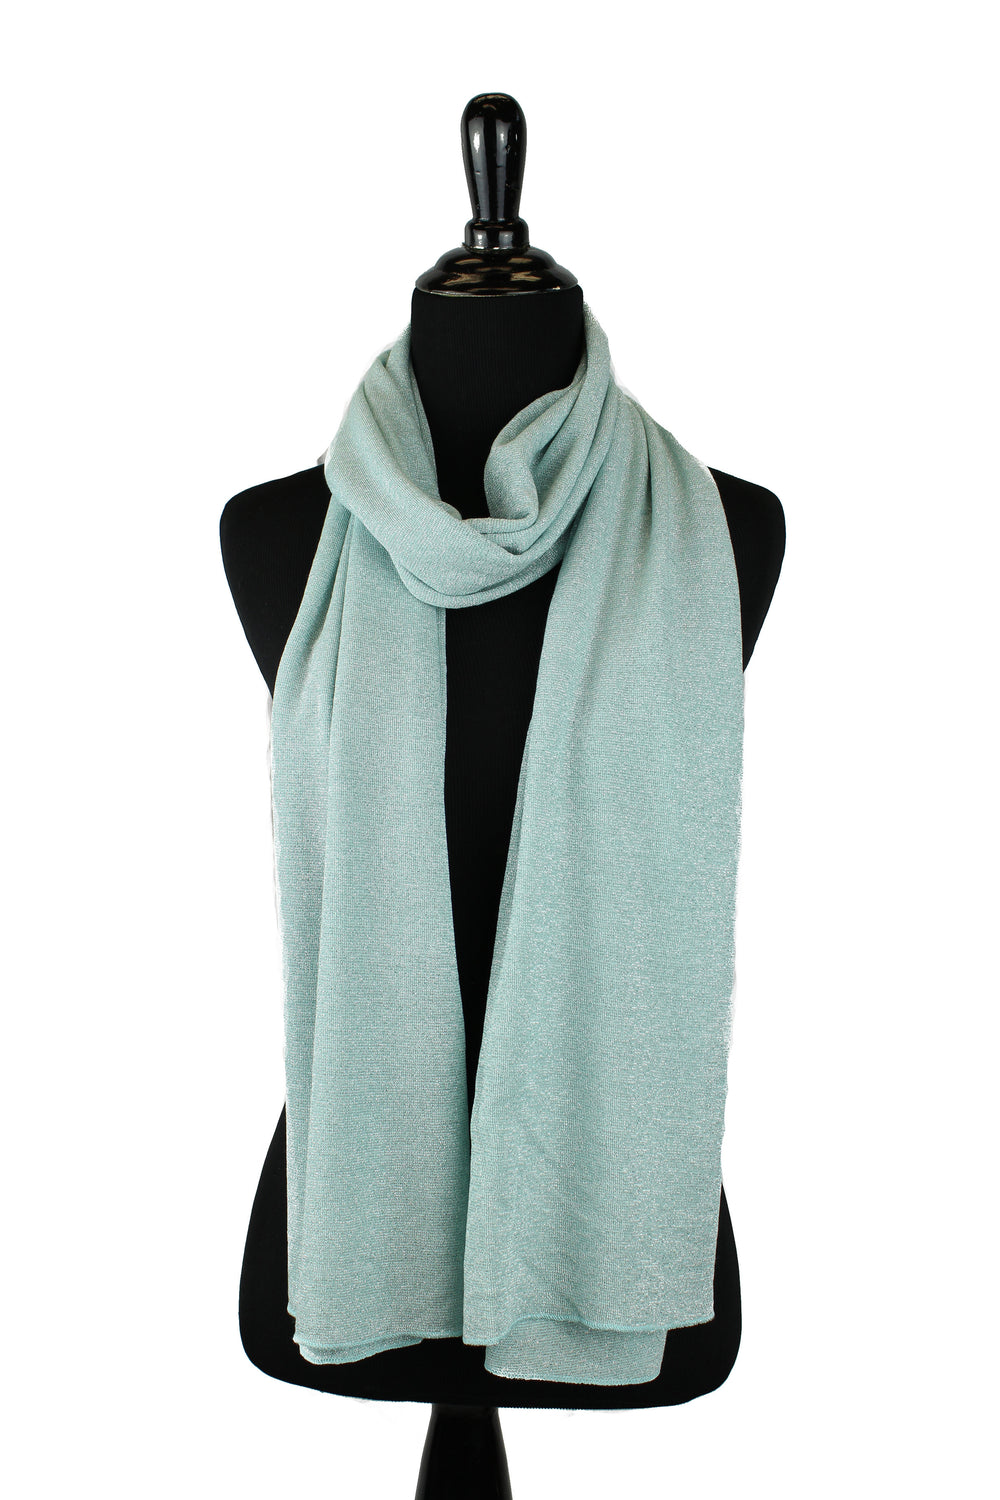 Shimmer Jersey Hijab - Mint